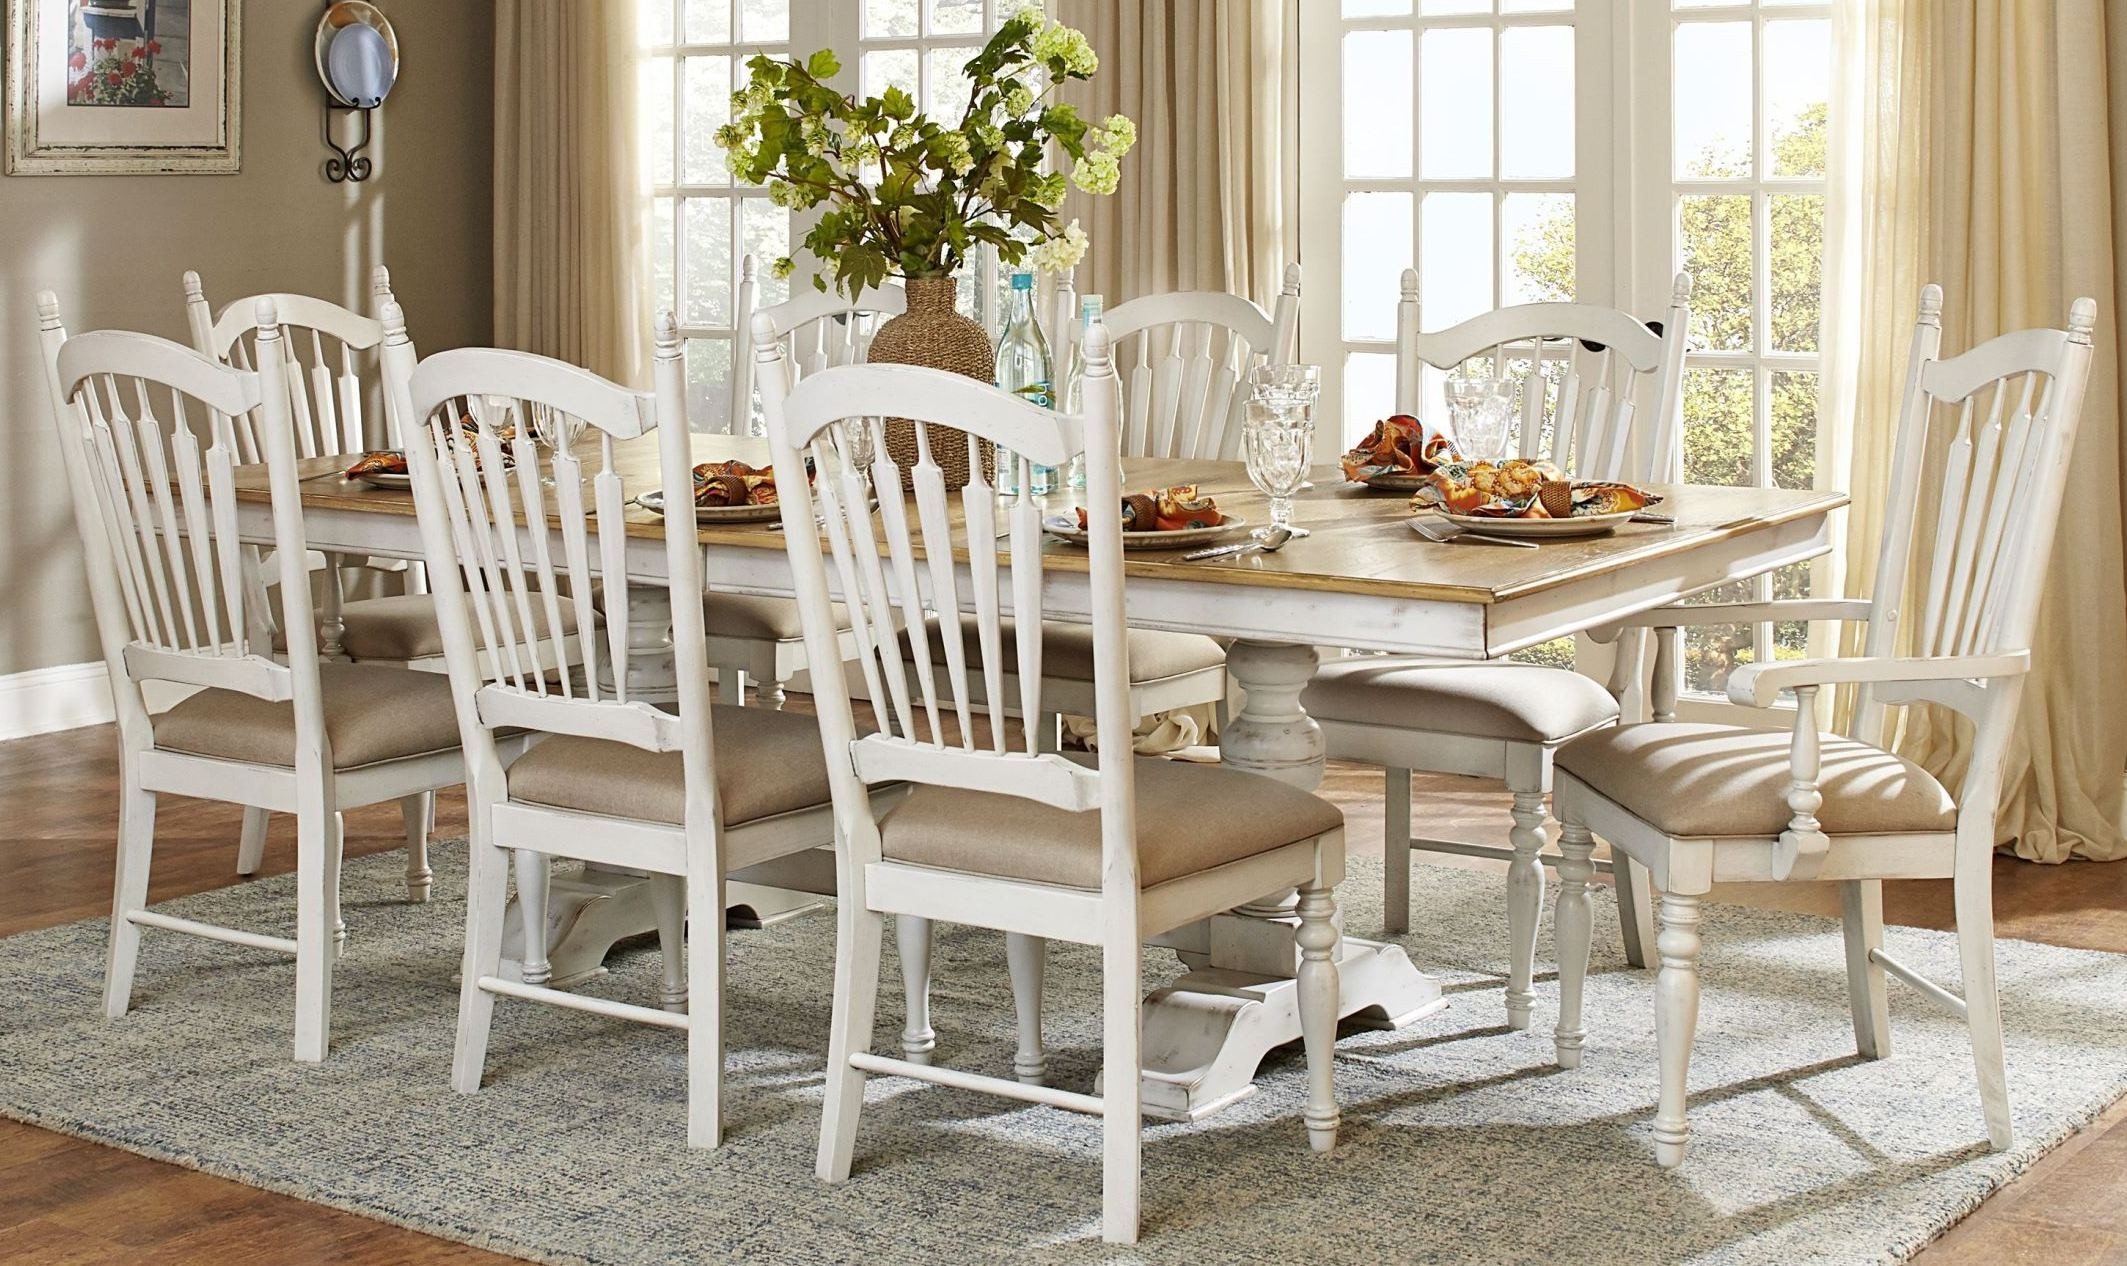 Hollyhock Distressed white Dining Room Set from  : 5123 96 s23 from colemanfurniture.com size 2127 x 1266 jpeg 706kB